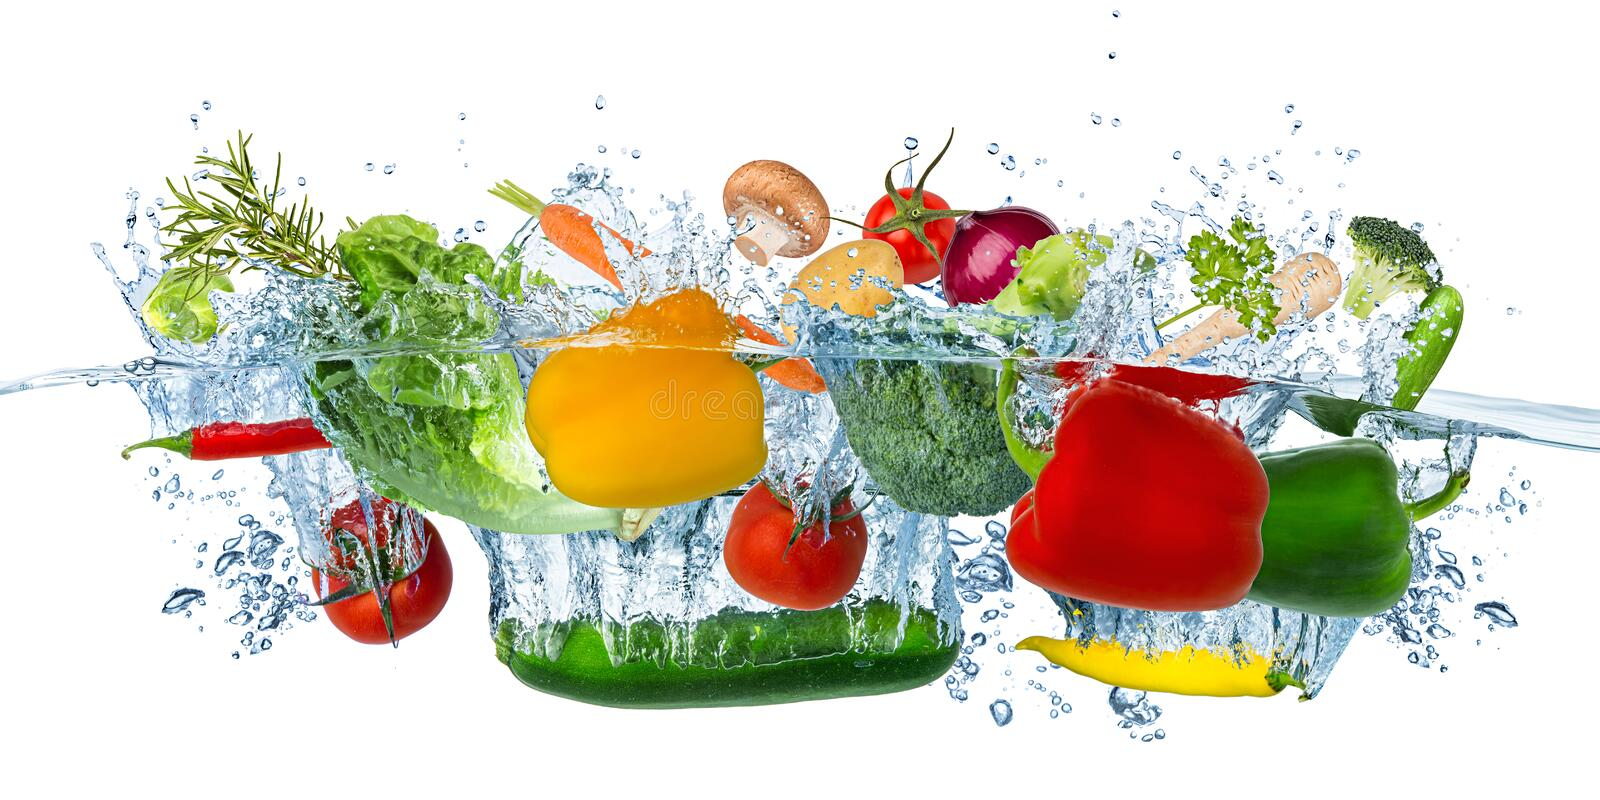 Fresh vegetables splashing into blue clear water splash healthy food diet freshness concept isolated white background stock images